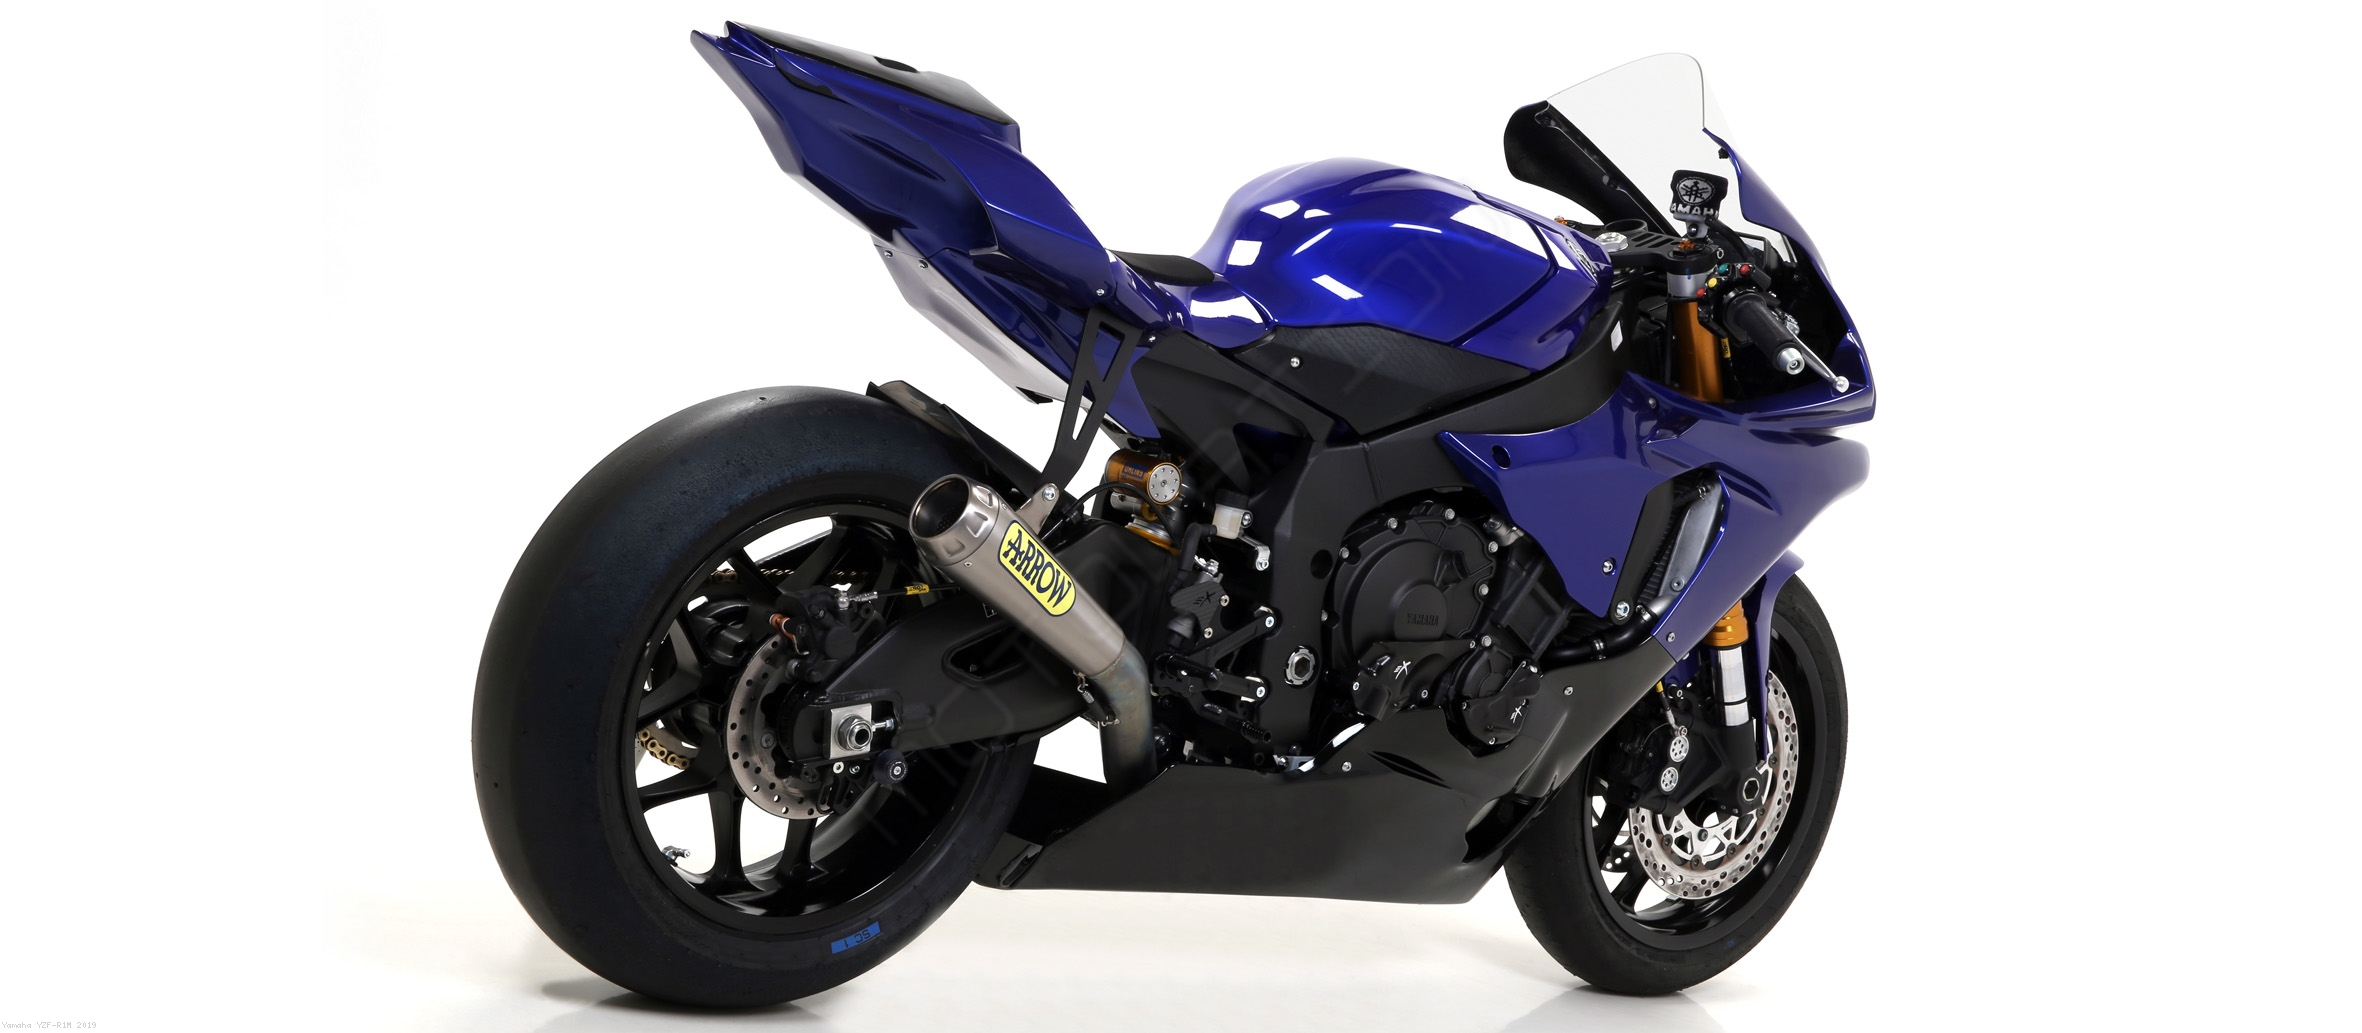 Competition Evo Full Exhaust System By Arrow Yamaha Yzf R1m 2019